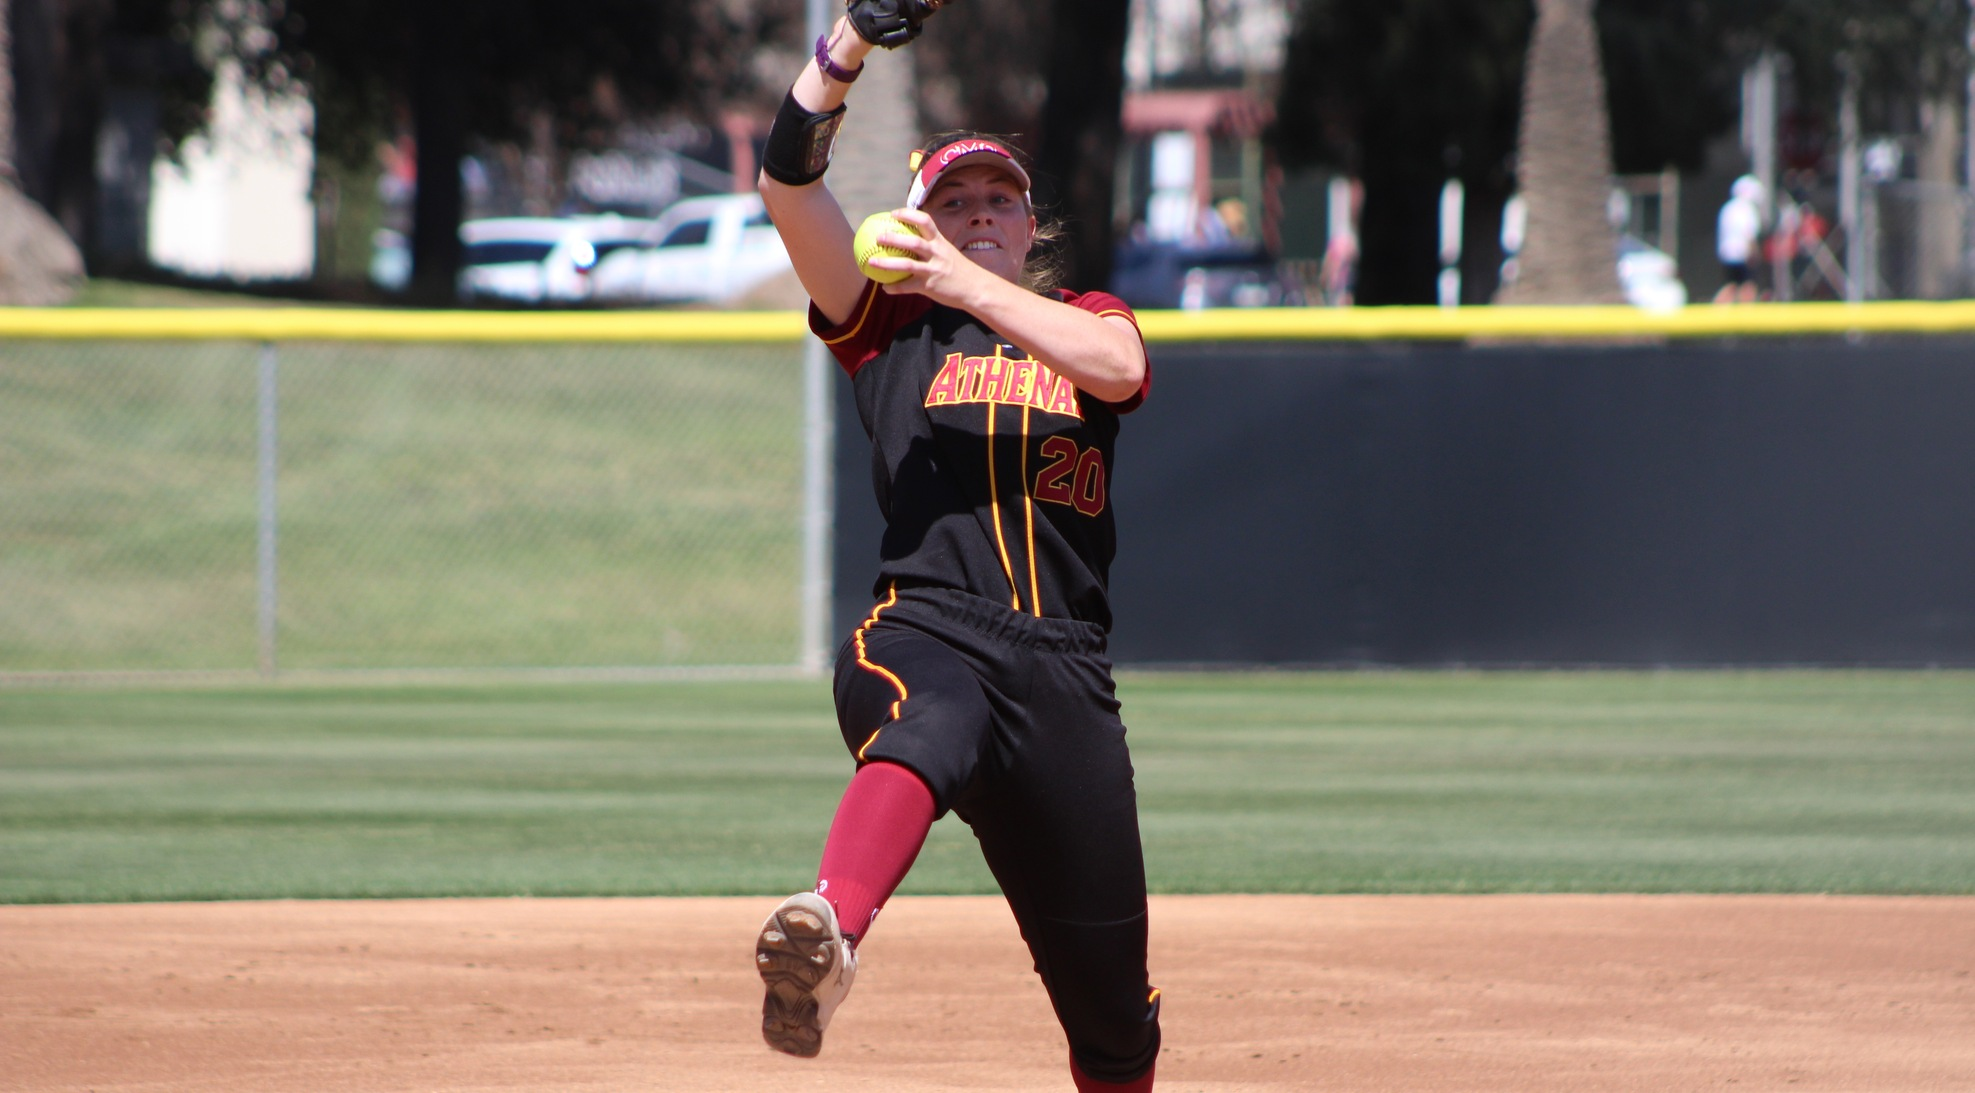 Anna Gurr (CMC) tossed a complete-game shutout in Game One. (photo credit: Alisha Alexander)